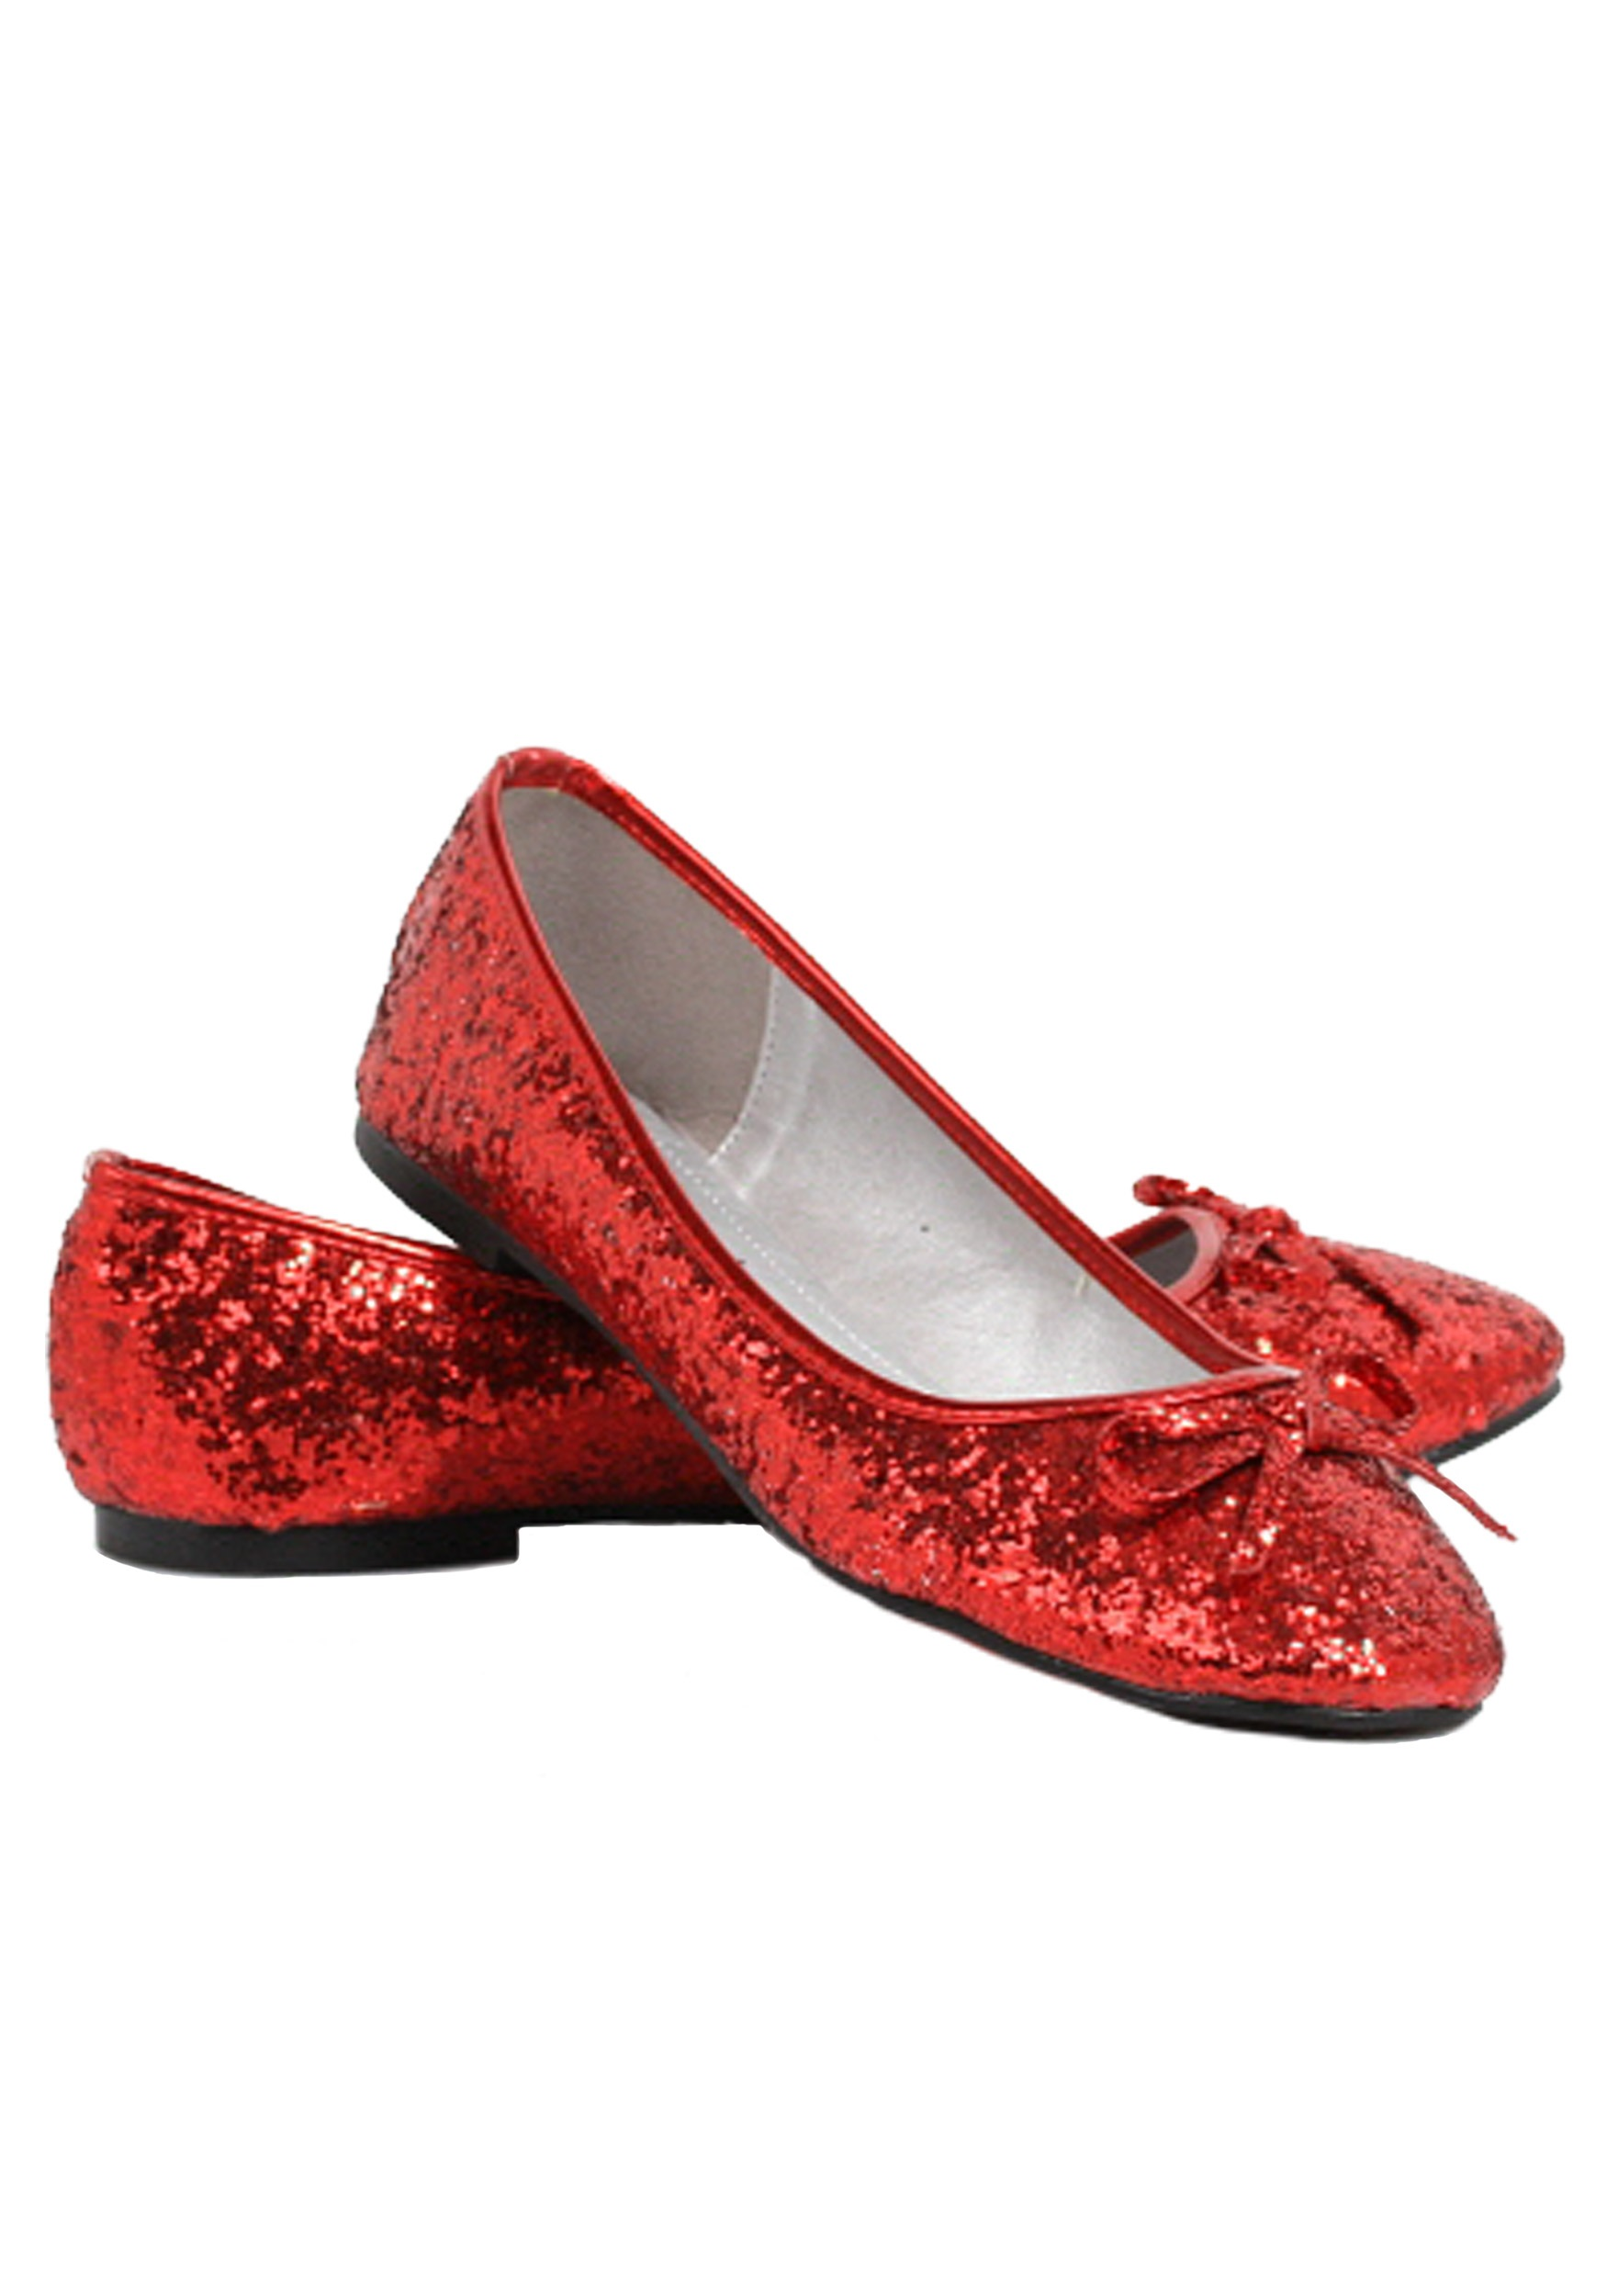 cb22f2fe39 ELLIE SHOES - Ellie Shoes E-016-Mila-G Adult Glitter Flat With Bow 10 / Red  - Walmart.com